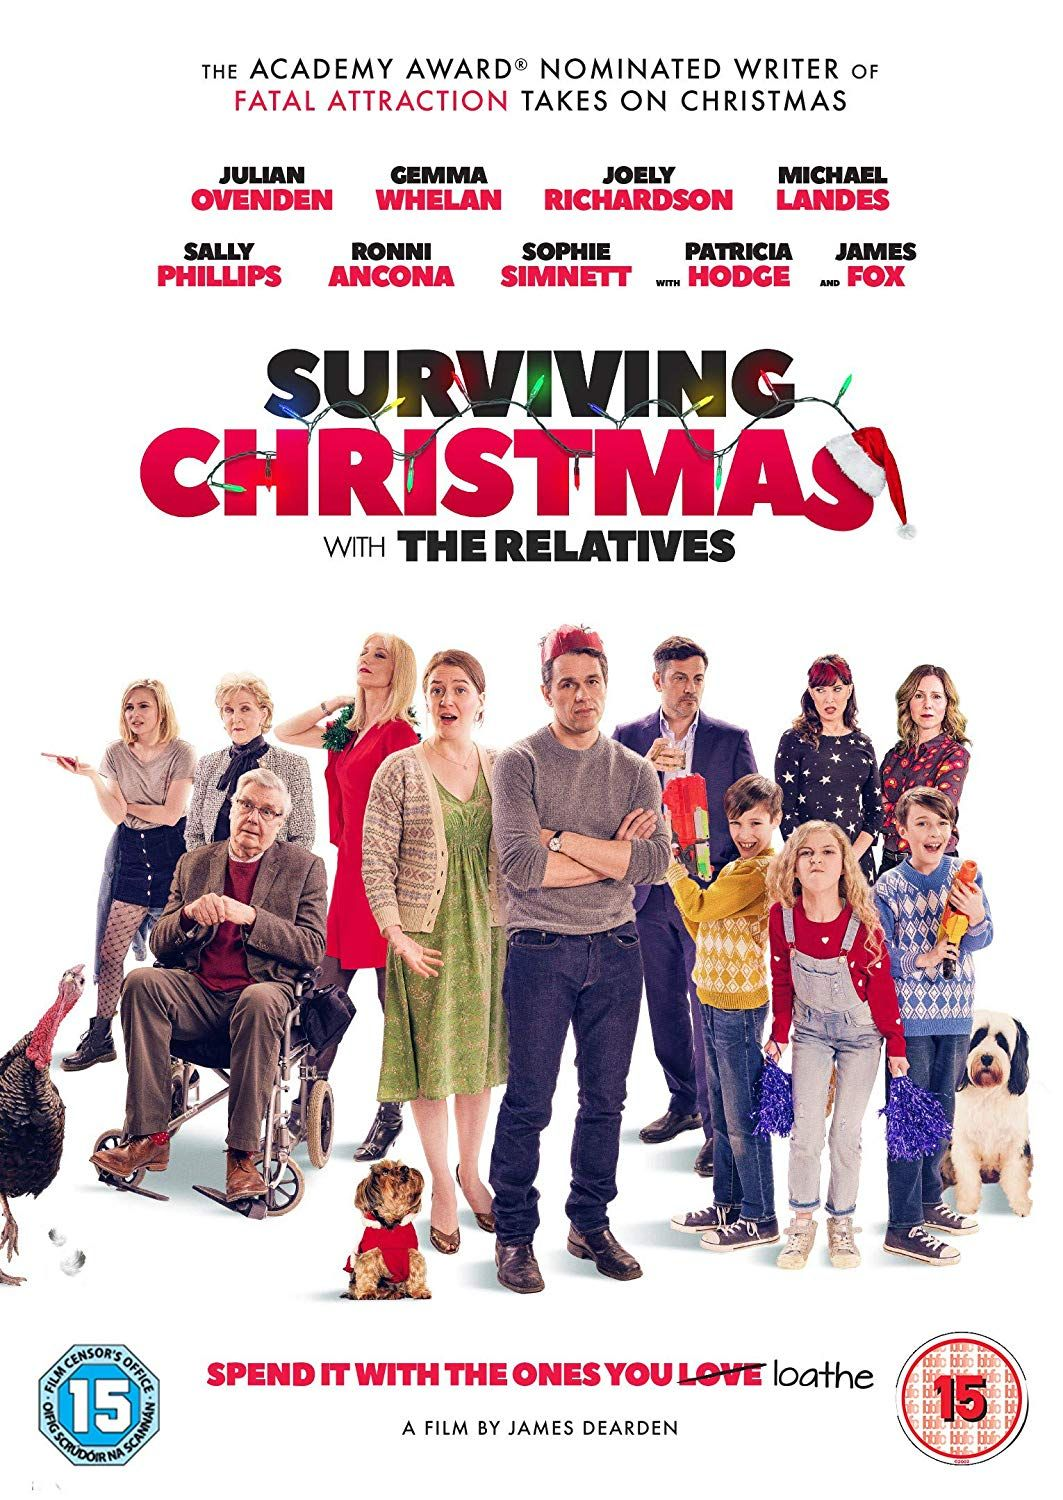 Surviving Christmas With The Relatives 2020 3713 Surviving Christmas With The Relatives (2018) 720p WEBRip in